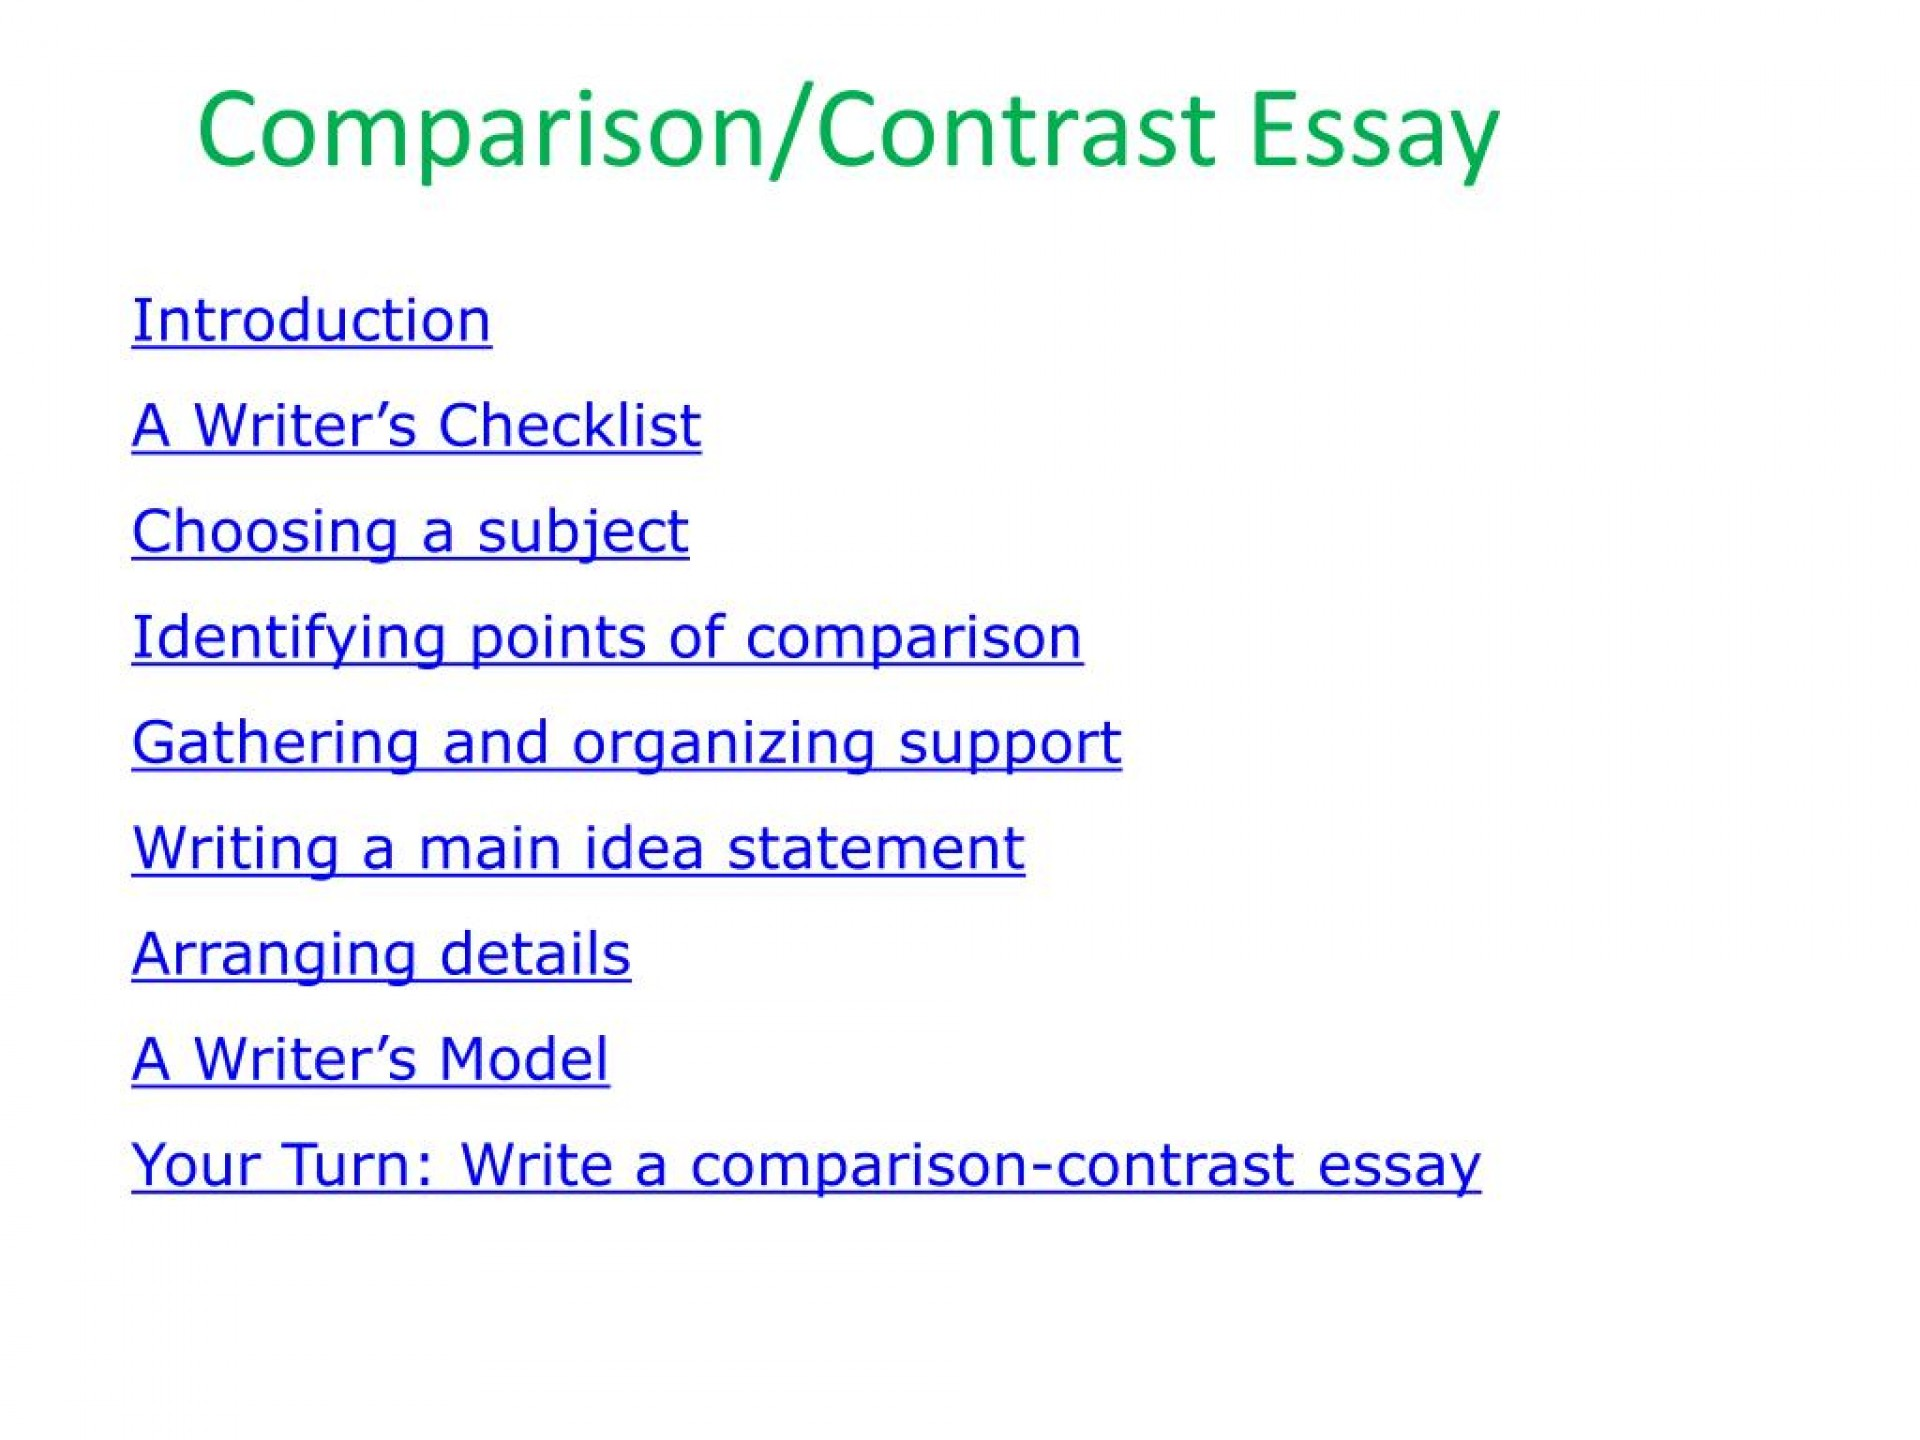 019 Comparison And Contrast Essay L Awful Rubric Compare Template Word 1920